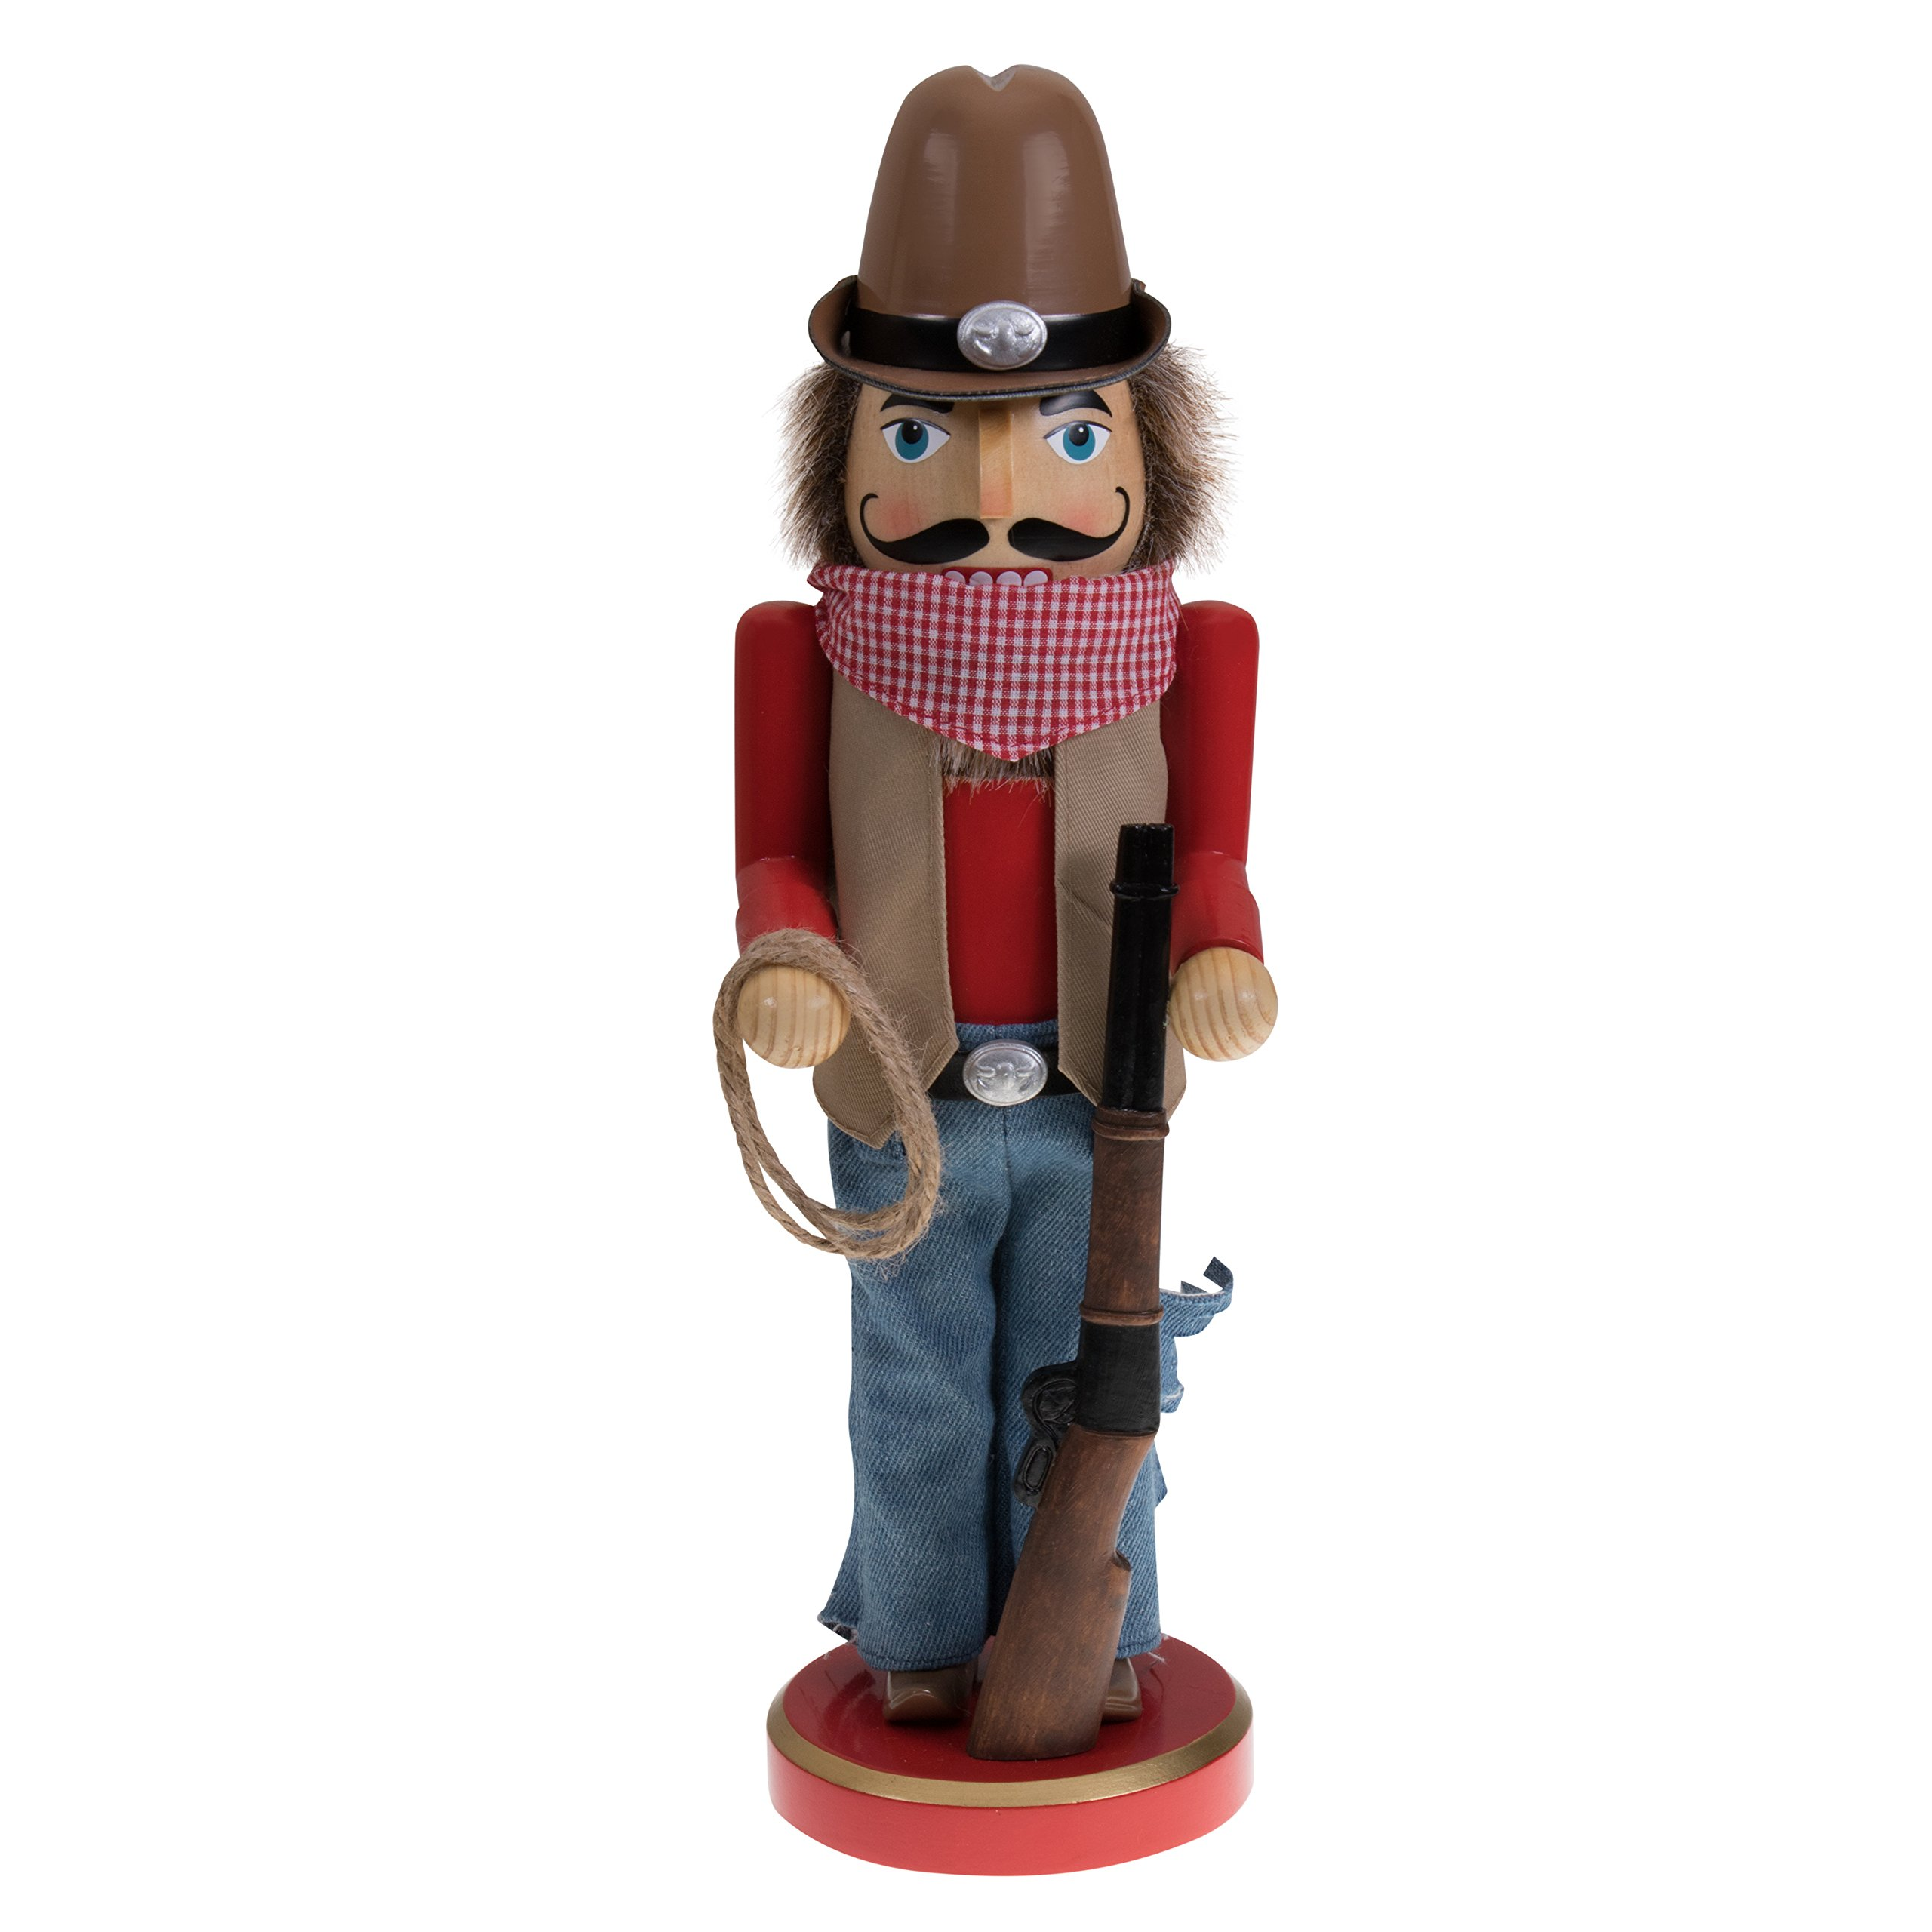 "Tall Cowboy Nutcracker by Clever Creations | Wearing Cowboy Hat, Belt Buckle and Handkerchief | Holding Rifle and Lasso | Perfect for Any Collection | Festive Holiday Decor | 100% Wood | 12"" Tall"